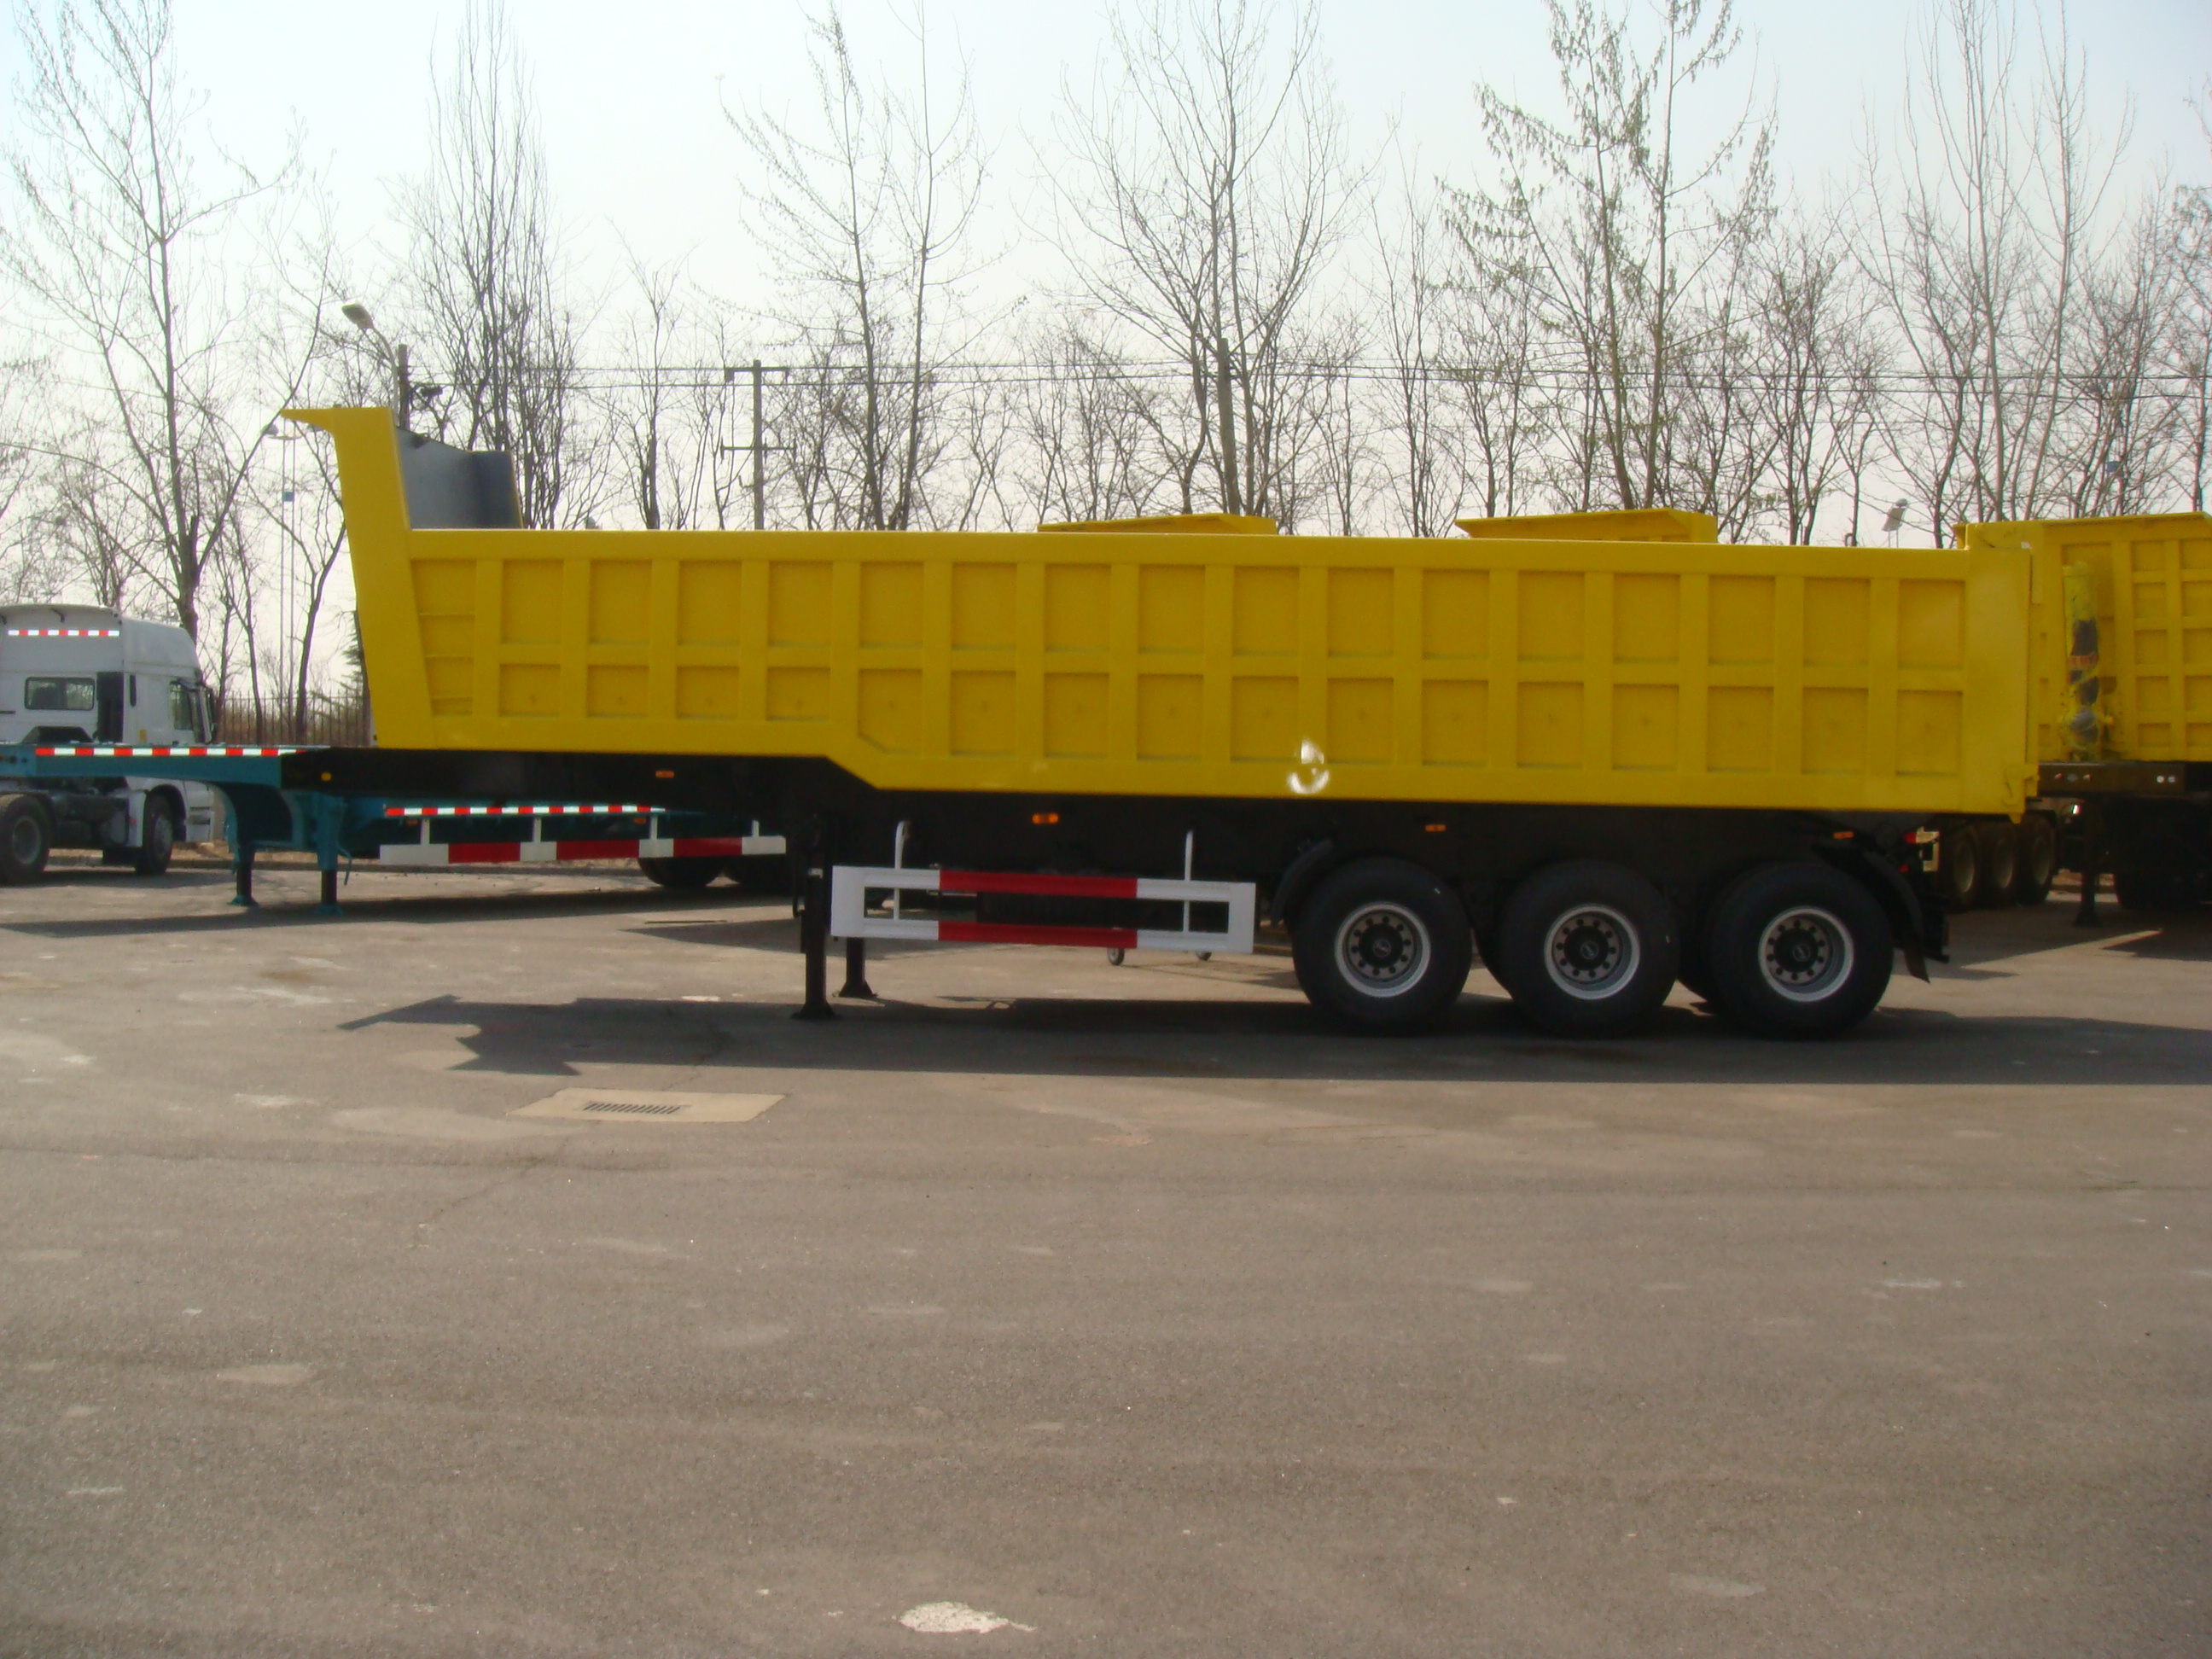 34cbm Dump Semi-trailer with 3 BPW axles and hydraulic rear Discharge system for 35 Tons